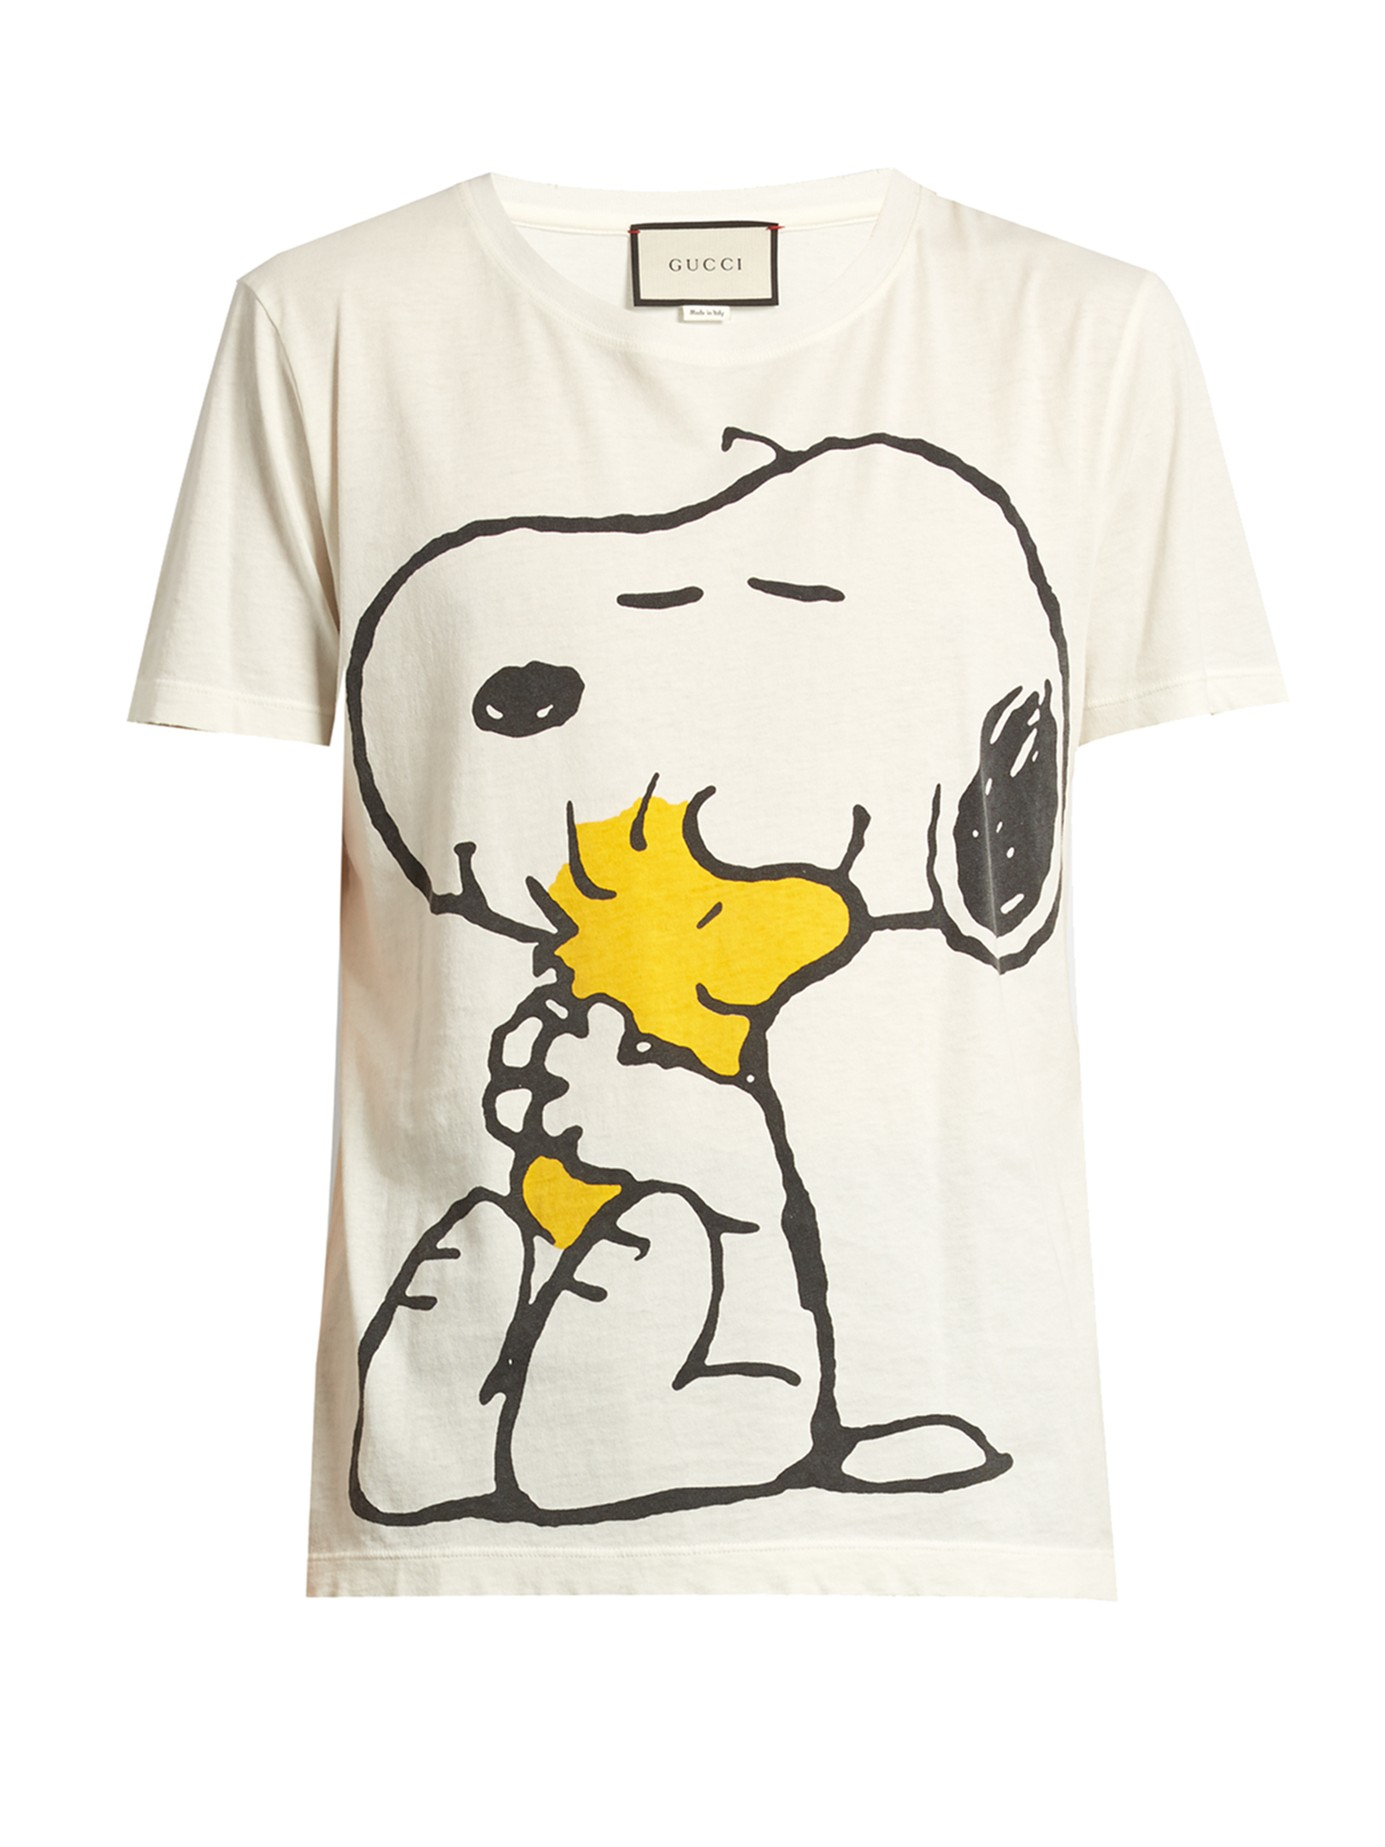 57b8150d6 Gucci Snoopy And Woodstock-print Cotton T-shirt for Men - Lyst